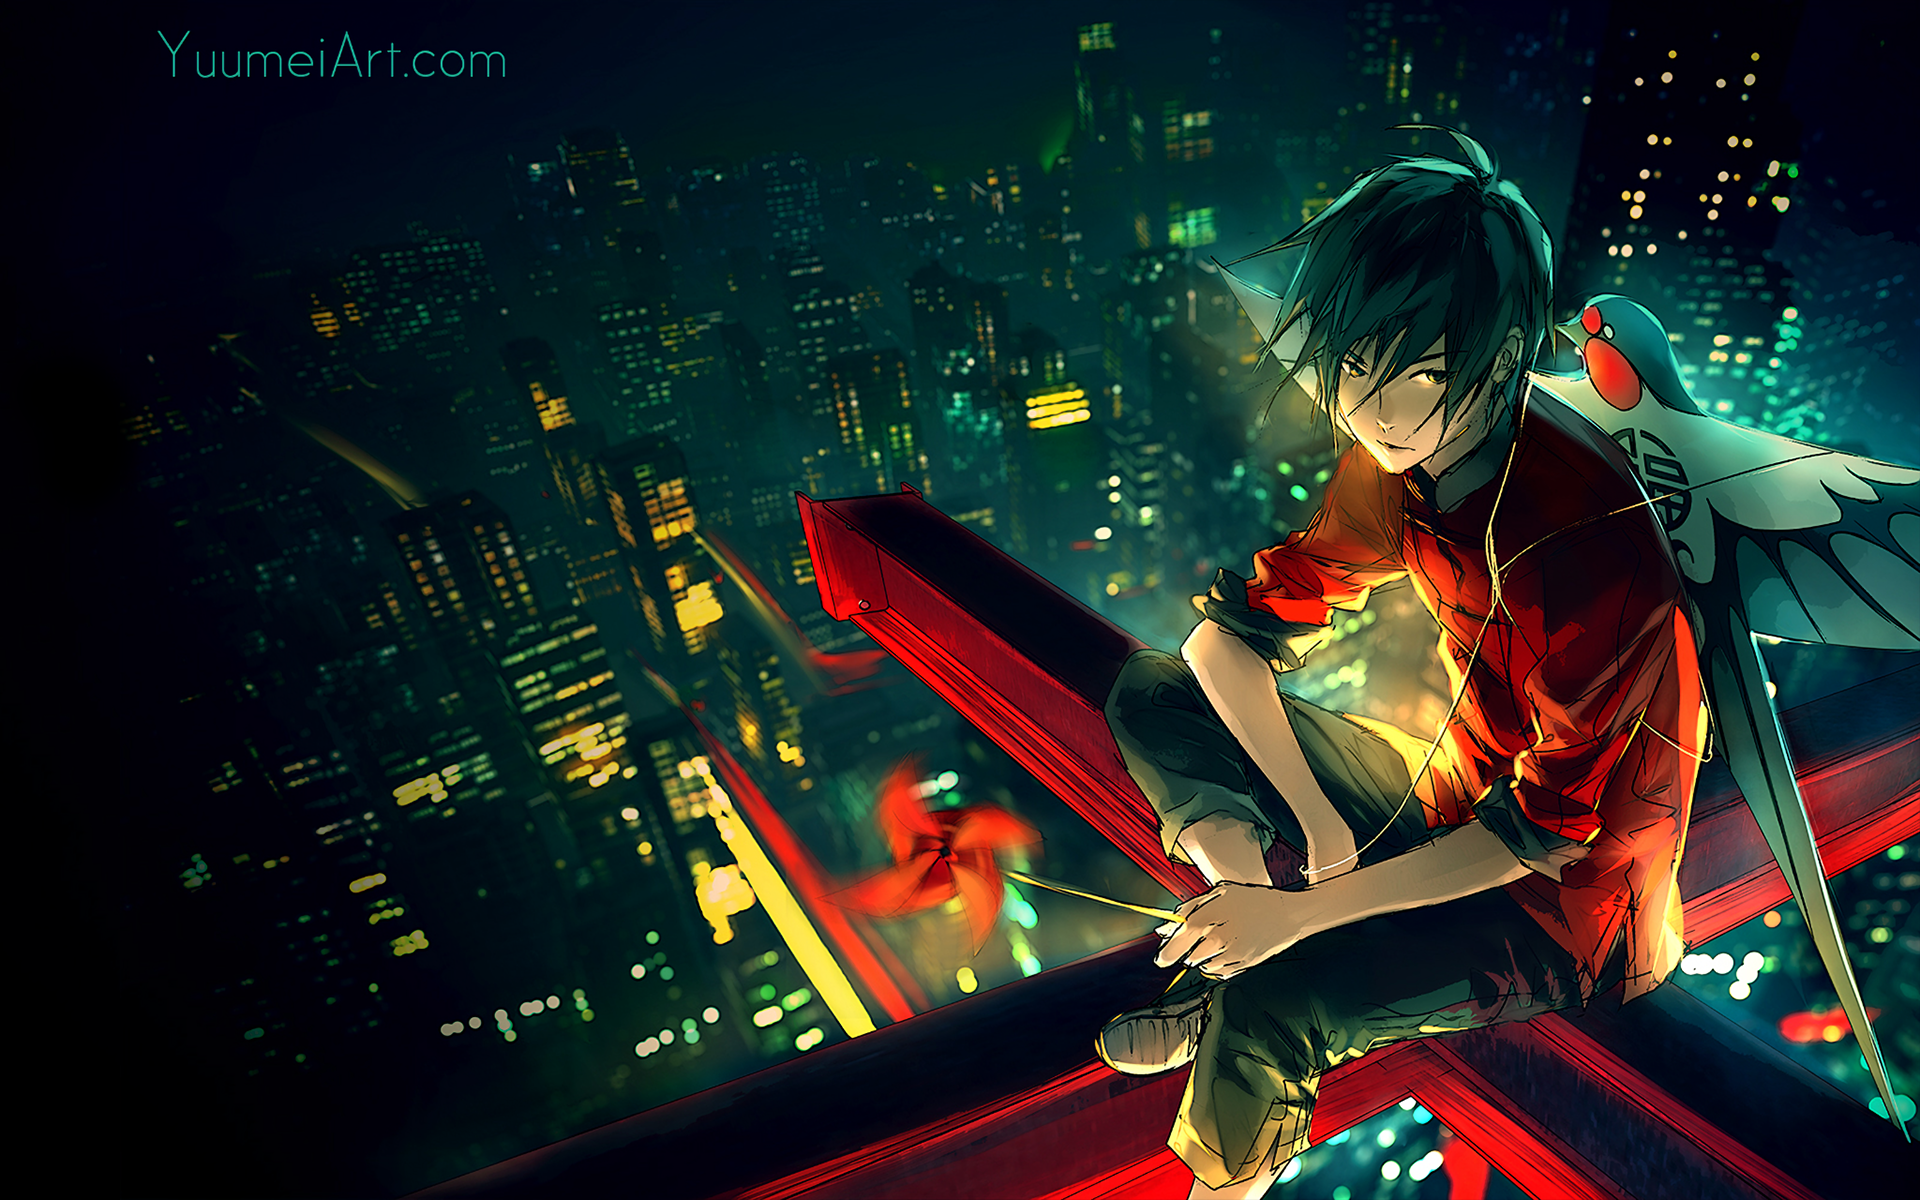 Replacement for the stars hd wallpaper background image - Wallpaper hd anime boy ...